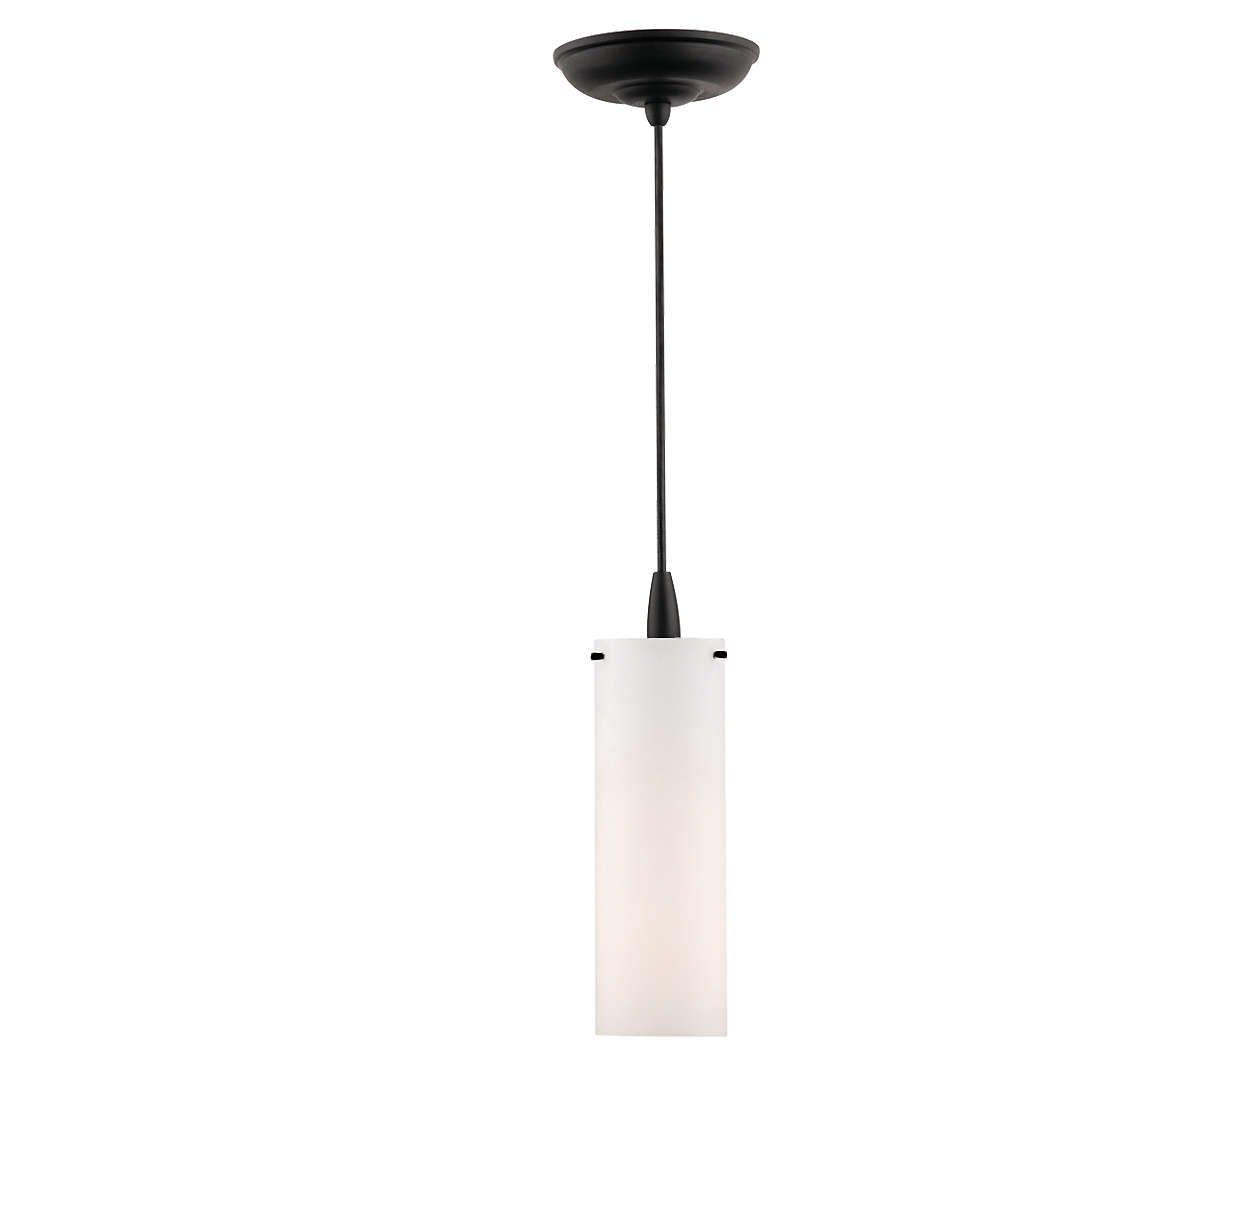 Current 1-light pendant in Black finish